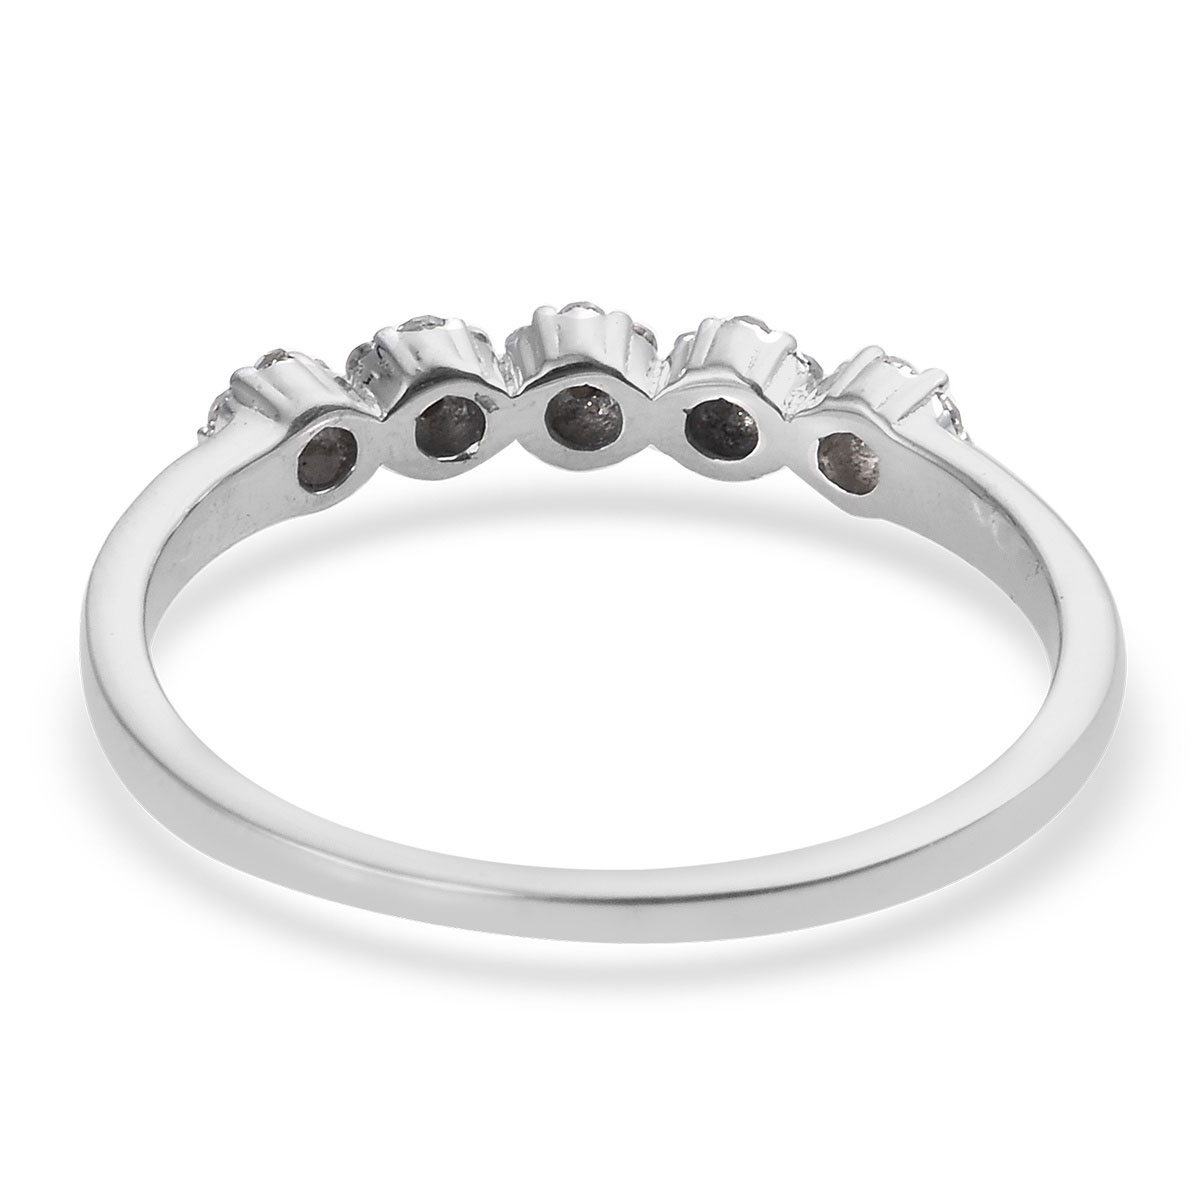 Diamond Ring in Platinum Over Sterling Silver (Size 7.0) 0.25 ctw